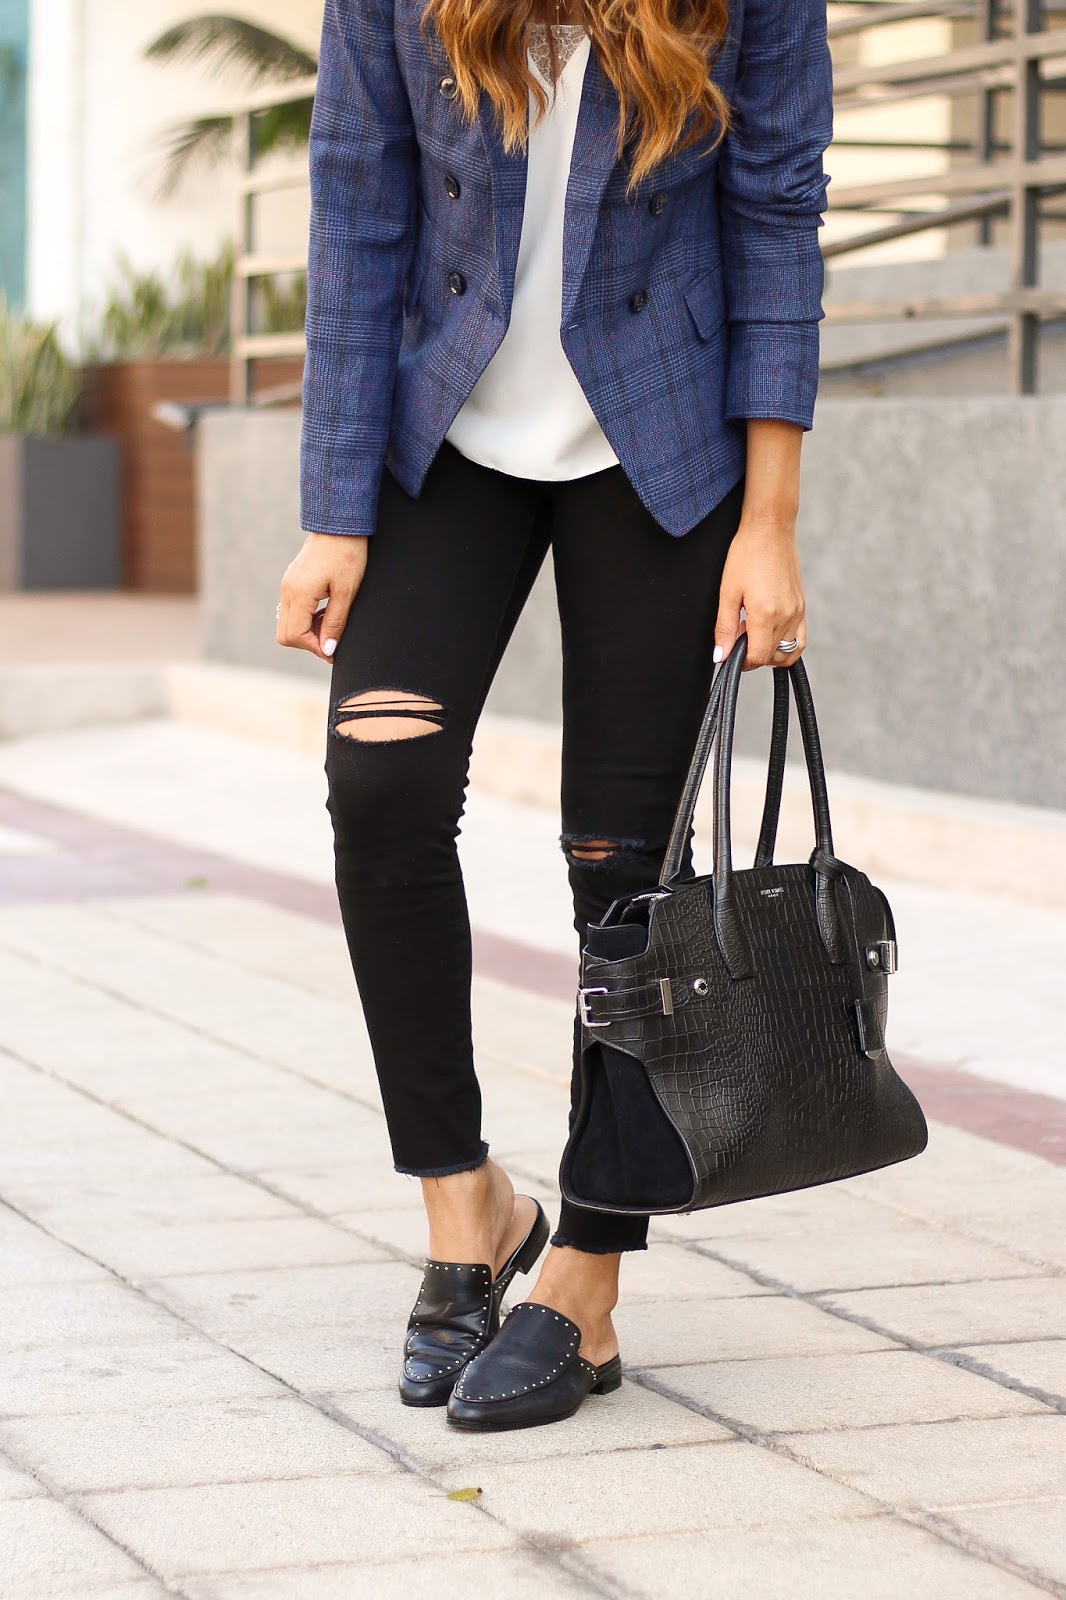 Black distressed jeans and studded shoes slides